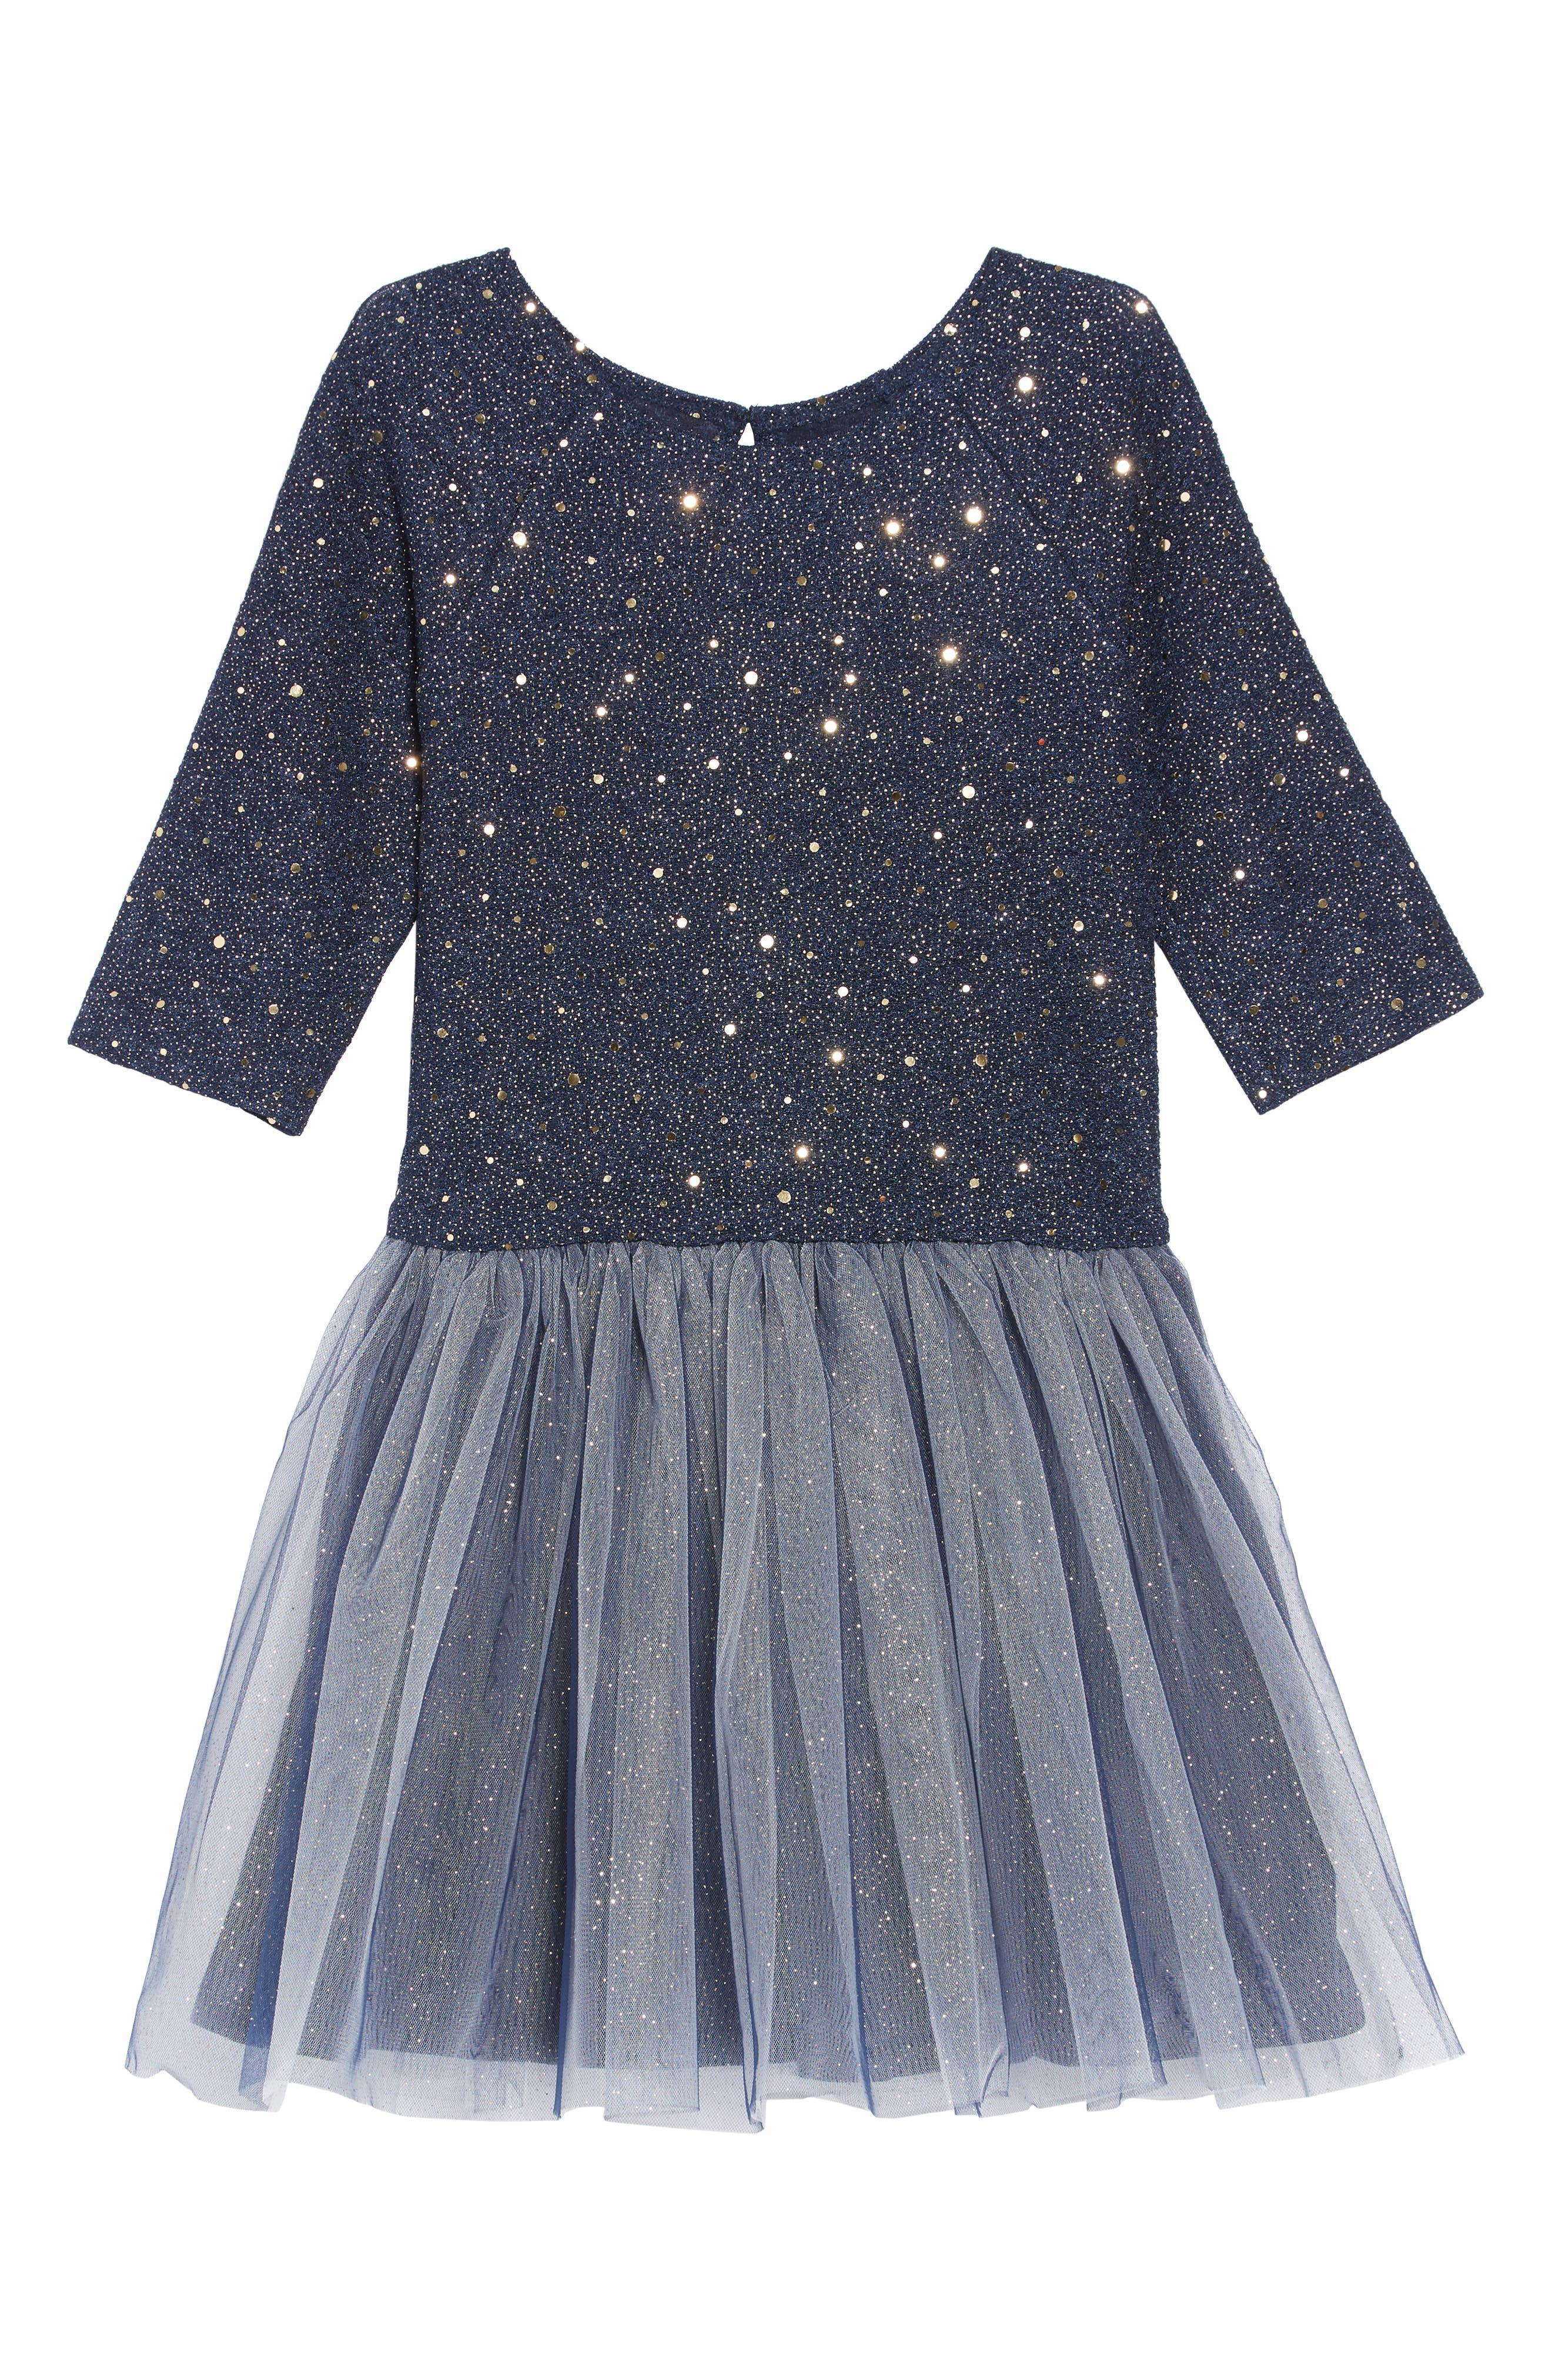 Embellished Tulle Dress,                             Main thumbnail 1, color,                             NAVY